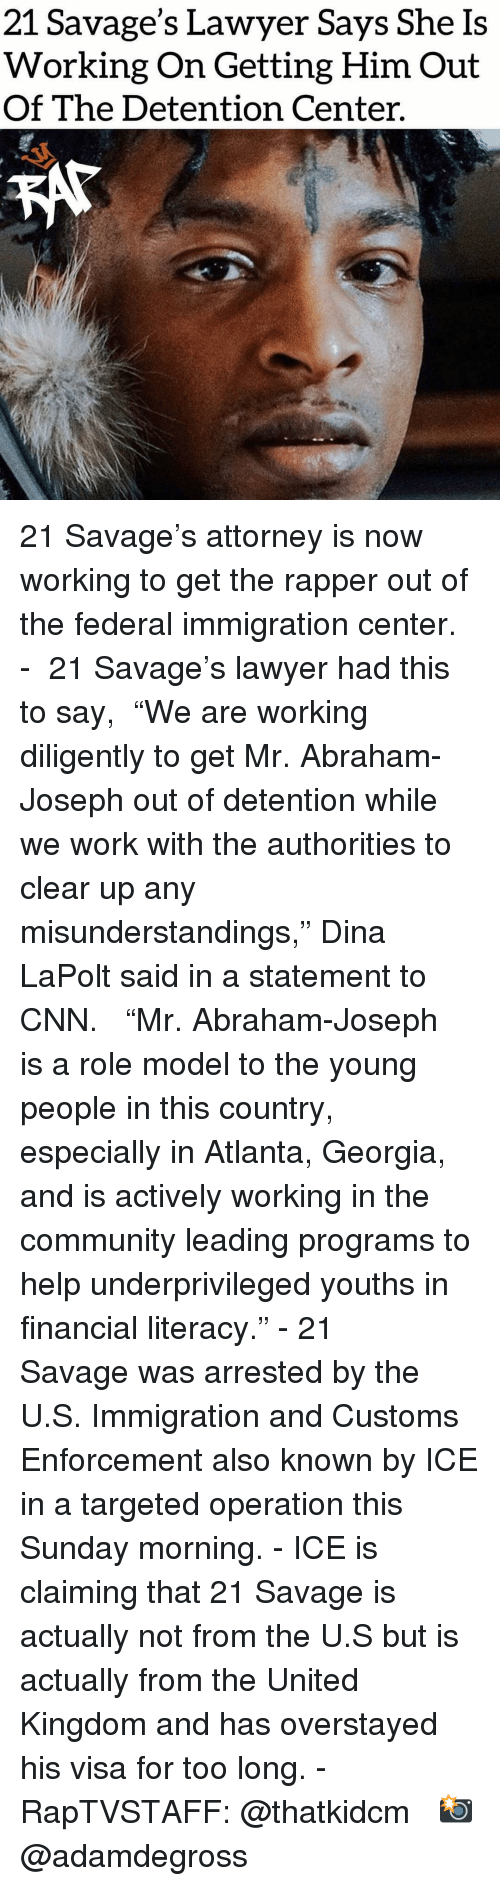 "cnn.com, Community, and Lawyer: 21 Savage's Lawyer Says She Is  Working On Getting Him Out  Of The Detention Center. 21 Savage's attorney is now working to get the rapper out of the federal immigration center.⁣⁣ - ⁣⁣ 21 Savage's lawyer had this to say,⁣⁣ ⁣⁣ ""We are working diligently to get Mr. Abraham-Joseph out of detention while we work with the authorities to clear up any misunderstandings,"" Dina LaPolt said in a statement to CNN. ⁣⁣ ⁣⁣ ""Mr. Abraham-Joseph is a role model to the young people in this country, especially in Atlanta, Georgia, and is actively working in the community leading programs to help underprivileged youths in financial literacy.""⁣⁣ -⁣⁣ 21 Savage was arrested by the U.S. Immigration and Customs Enforcement also known by ICE in a targeted operation this Sunday morning.⁣⁣ -⁣⁣ ICE is claiming that 21 Savage is actually not from the U.S but is actually from the United Kingdom and has overstayed his visa for too long.⁣⁣ -⁣⁣ RapTVSTAFF: @thatkidcm⁣⁣ 📸 @adamdegross⁣"